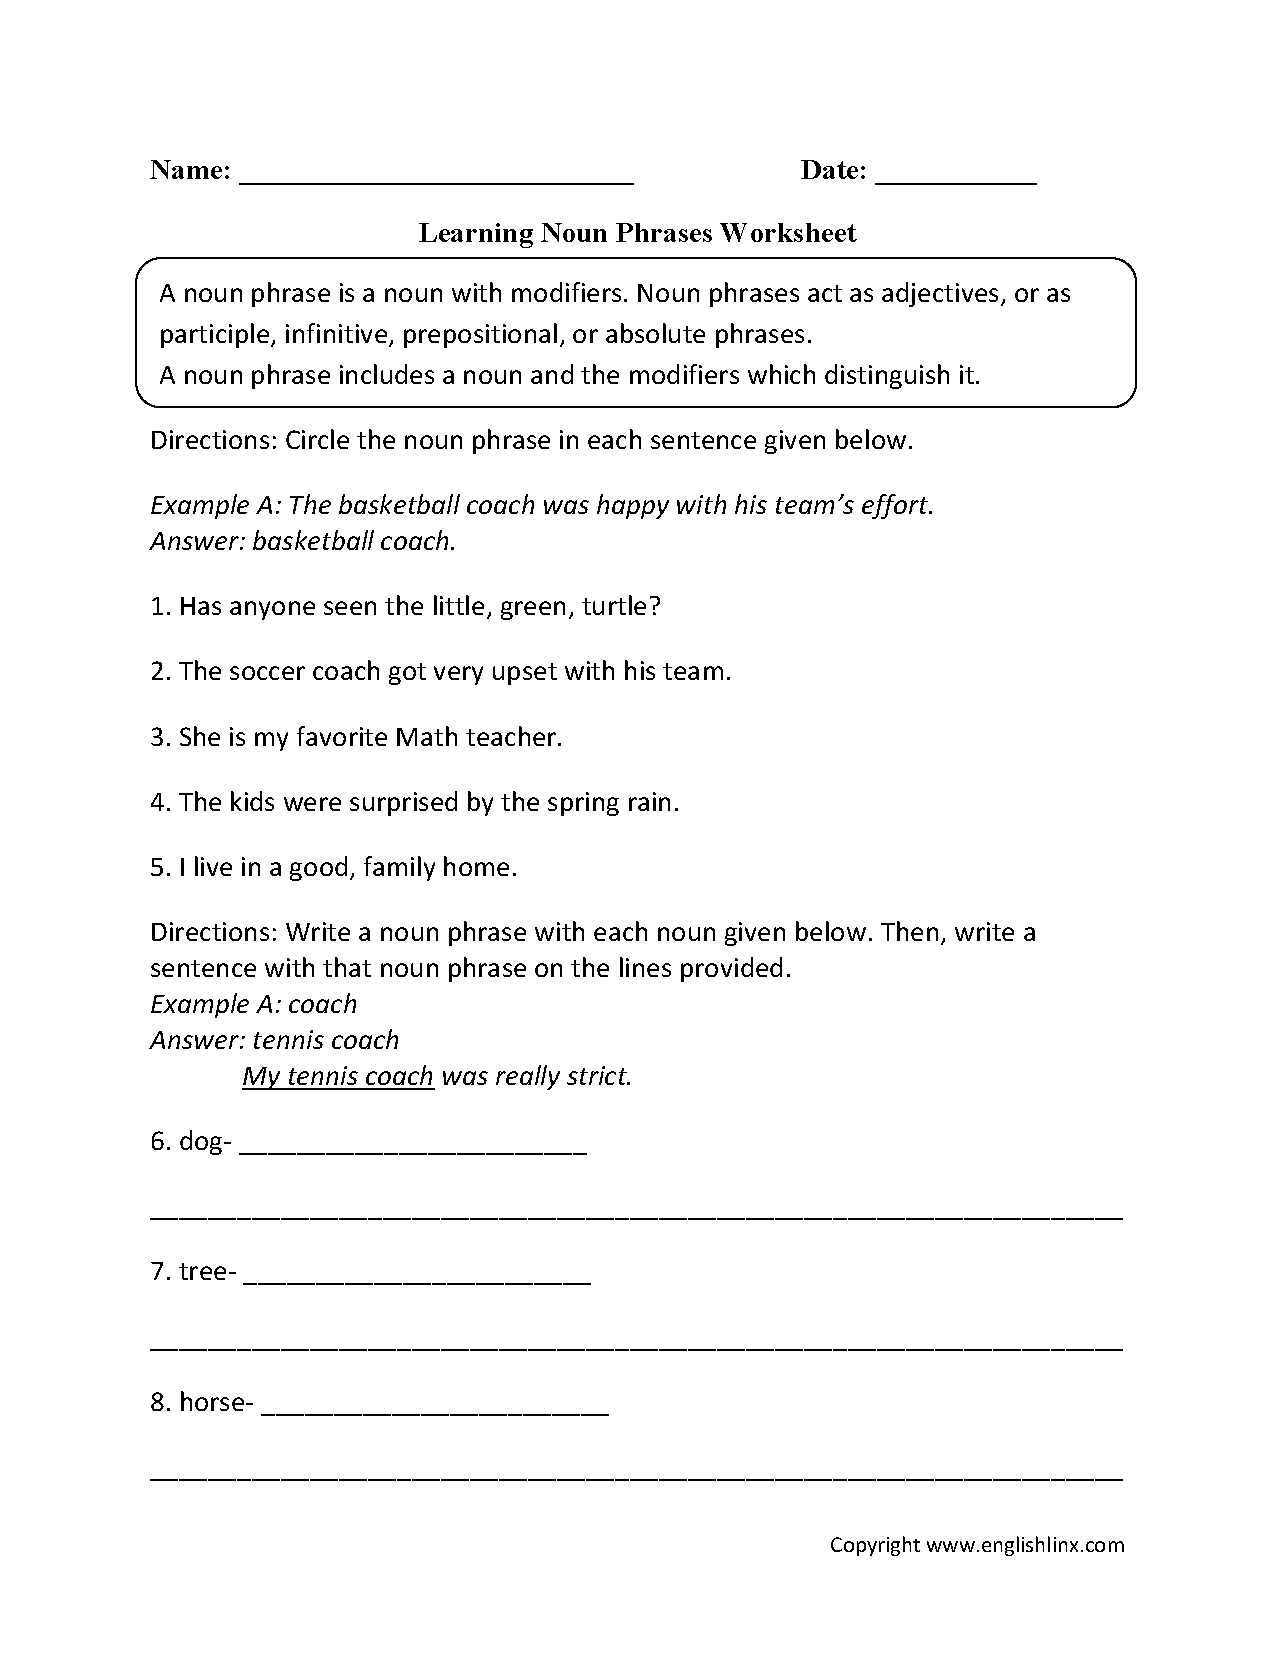 Worksheet On Adverb Clauses With Answers